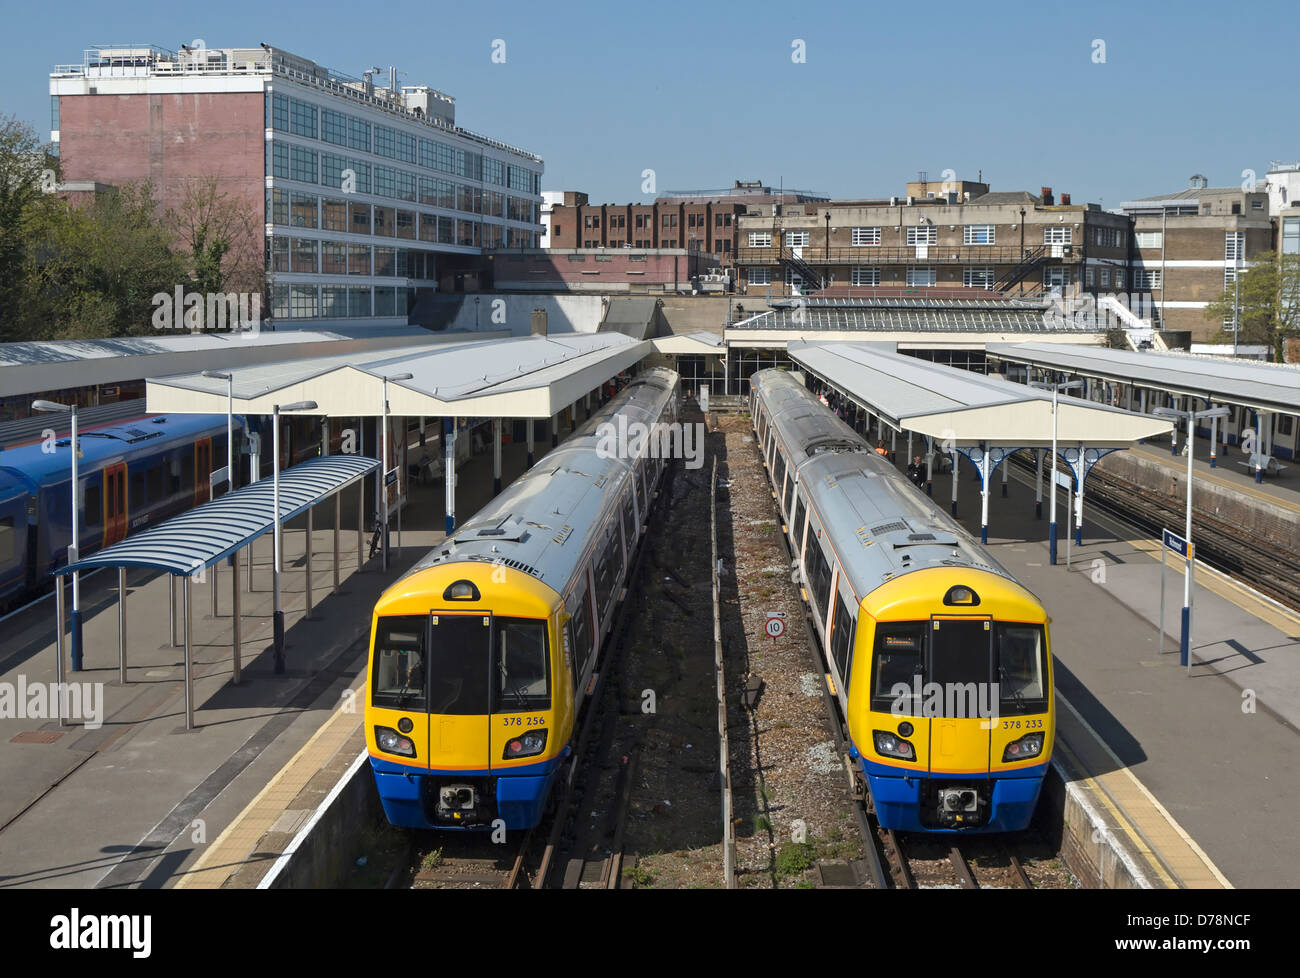 side by side trains at richmond station, richmond upon thames, surrey, england - Stock Image